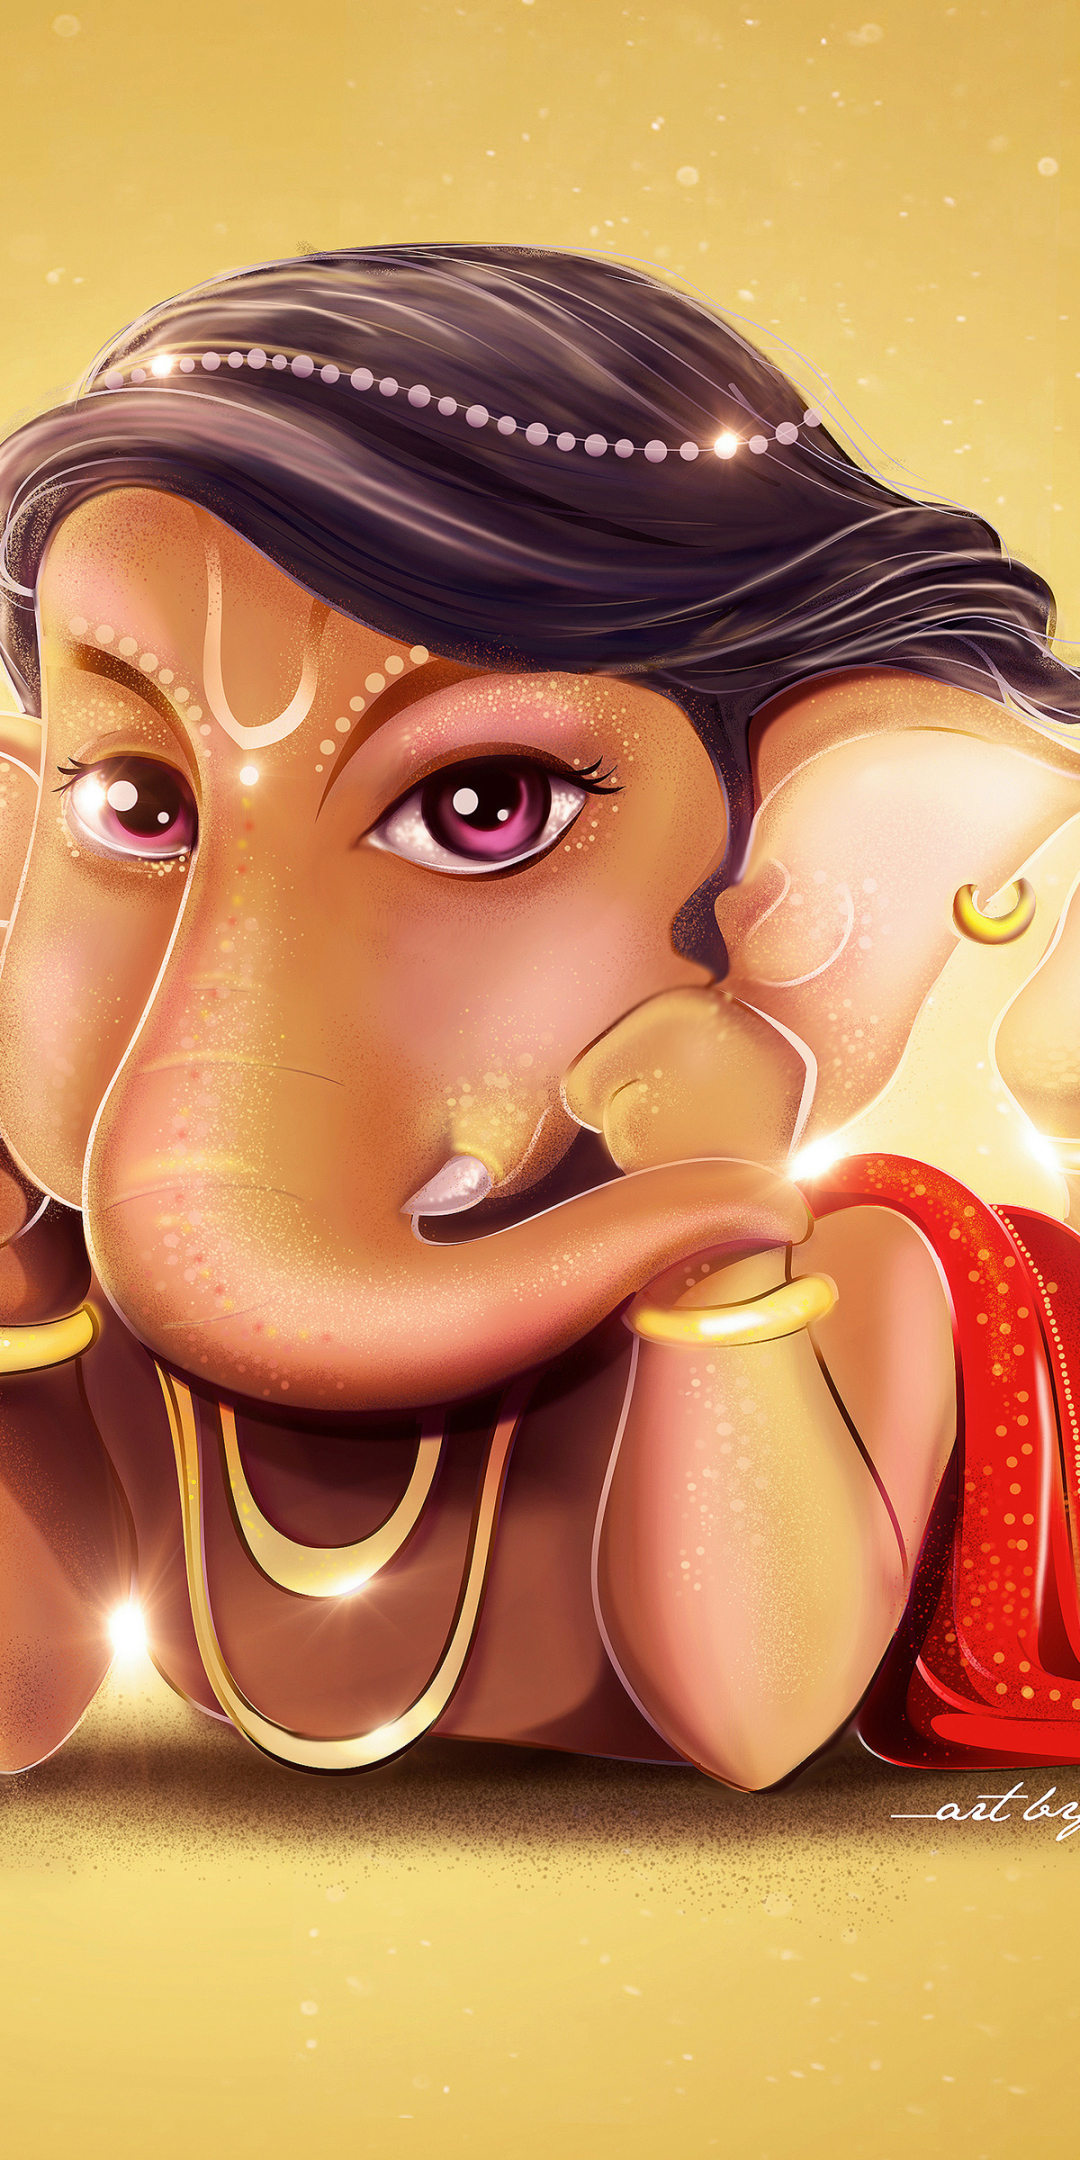 1080x2160 Cute Lord Ganesha One Plus 5t Honor 7x Honor View 10 Lg Q6 Wallpaper Hd Other 4k Wallpapers Images Photos And Background